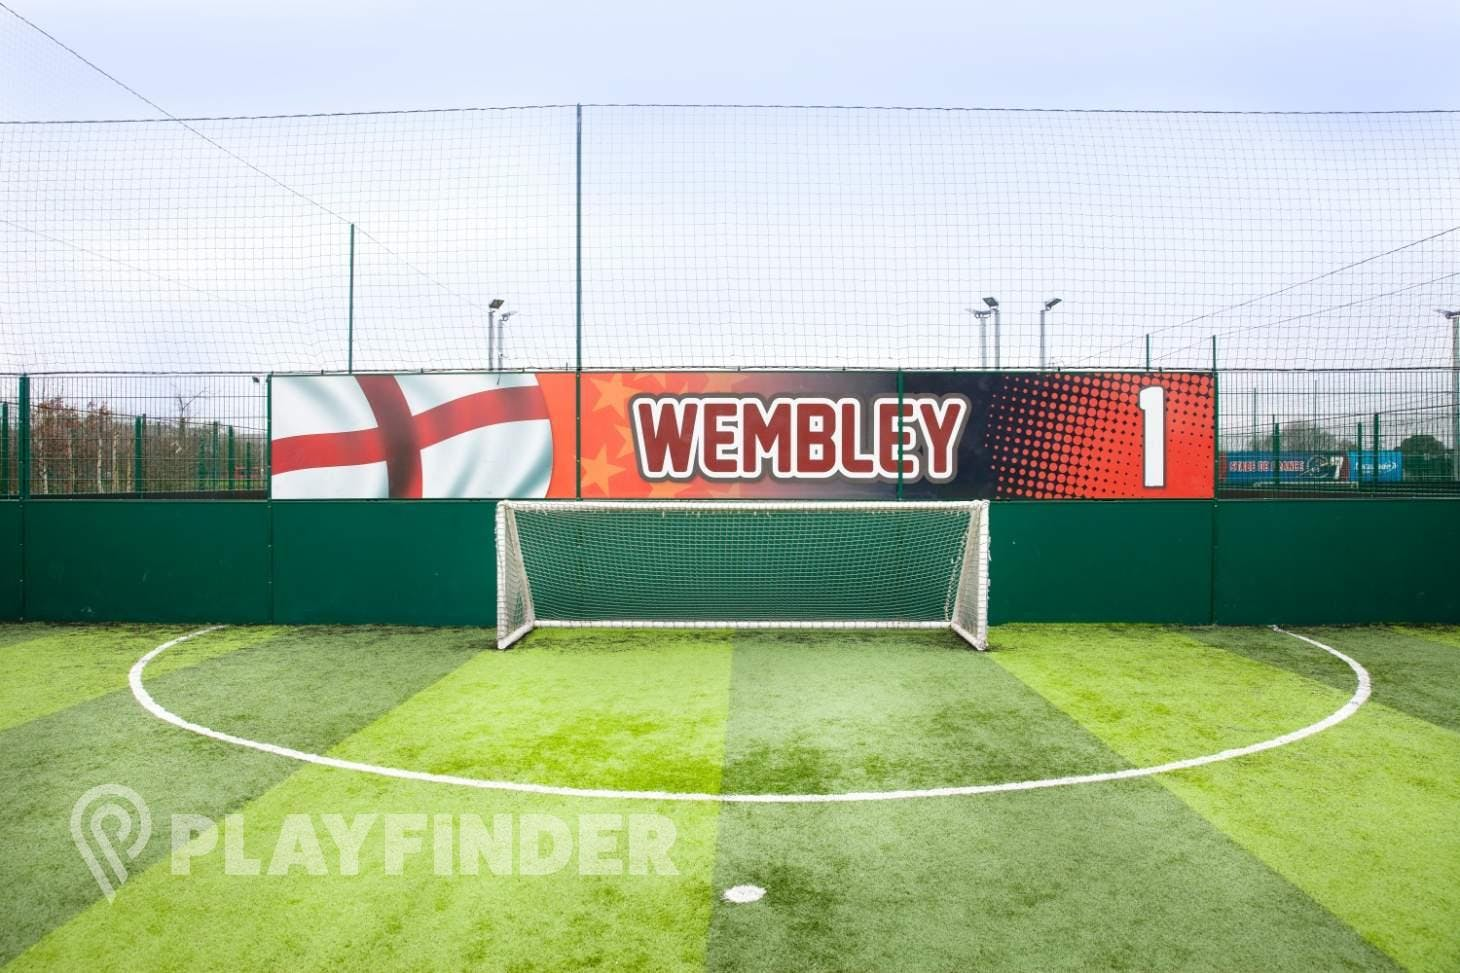 Goals Chester 5 a side | 3G Astroturf football pitch